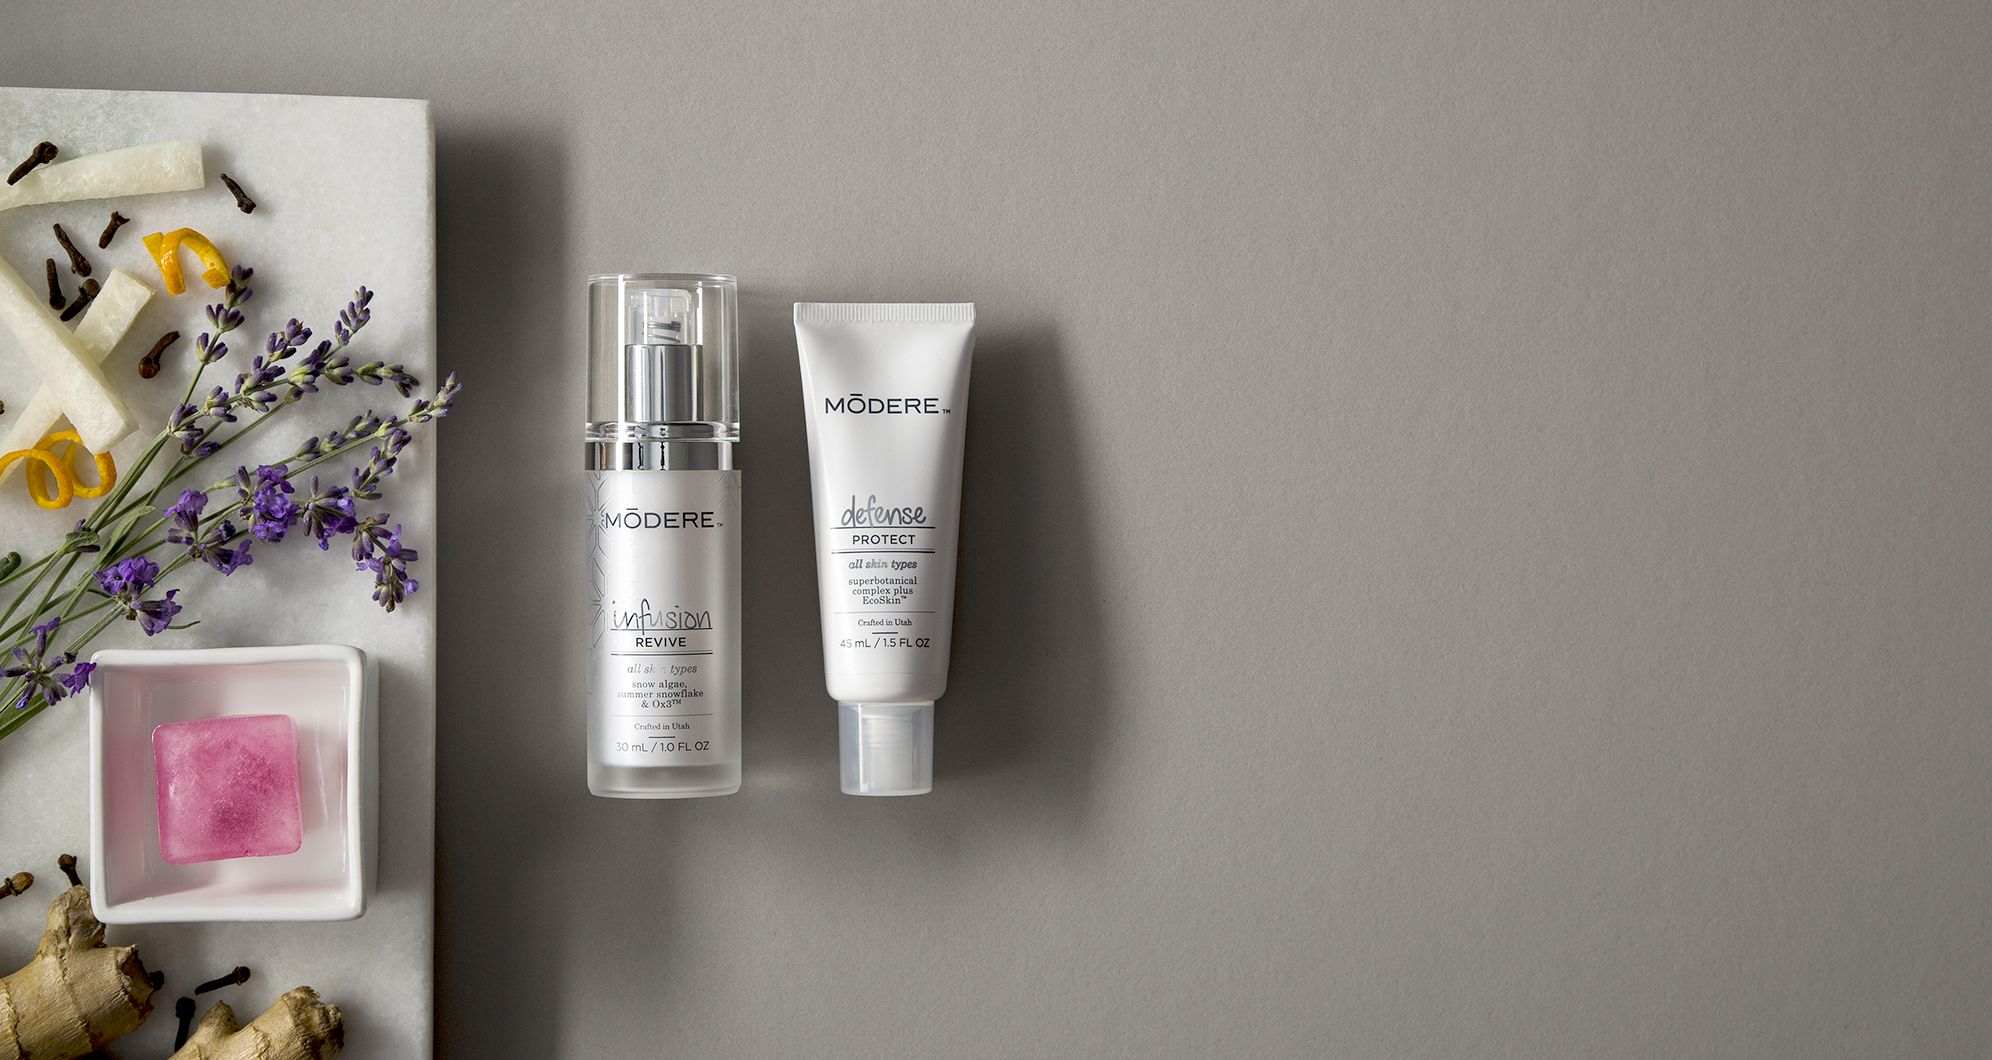 The MODERE I/D system brings an exclusive combination of botanical infusion and environmental skin defense, and it's available only from Modere, the leader in naturally-derived, safe, and effective formulas for almost 30 years!